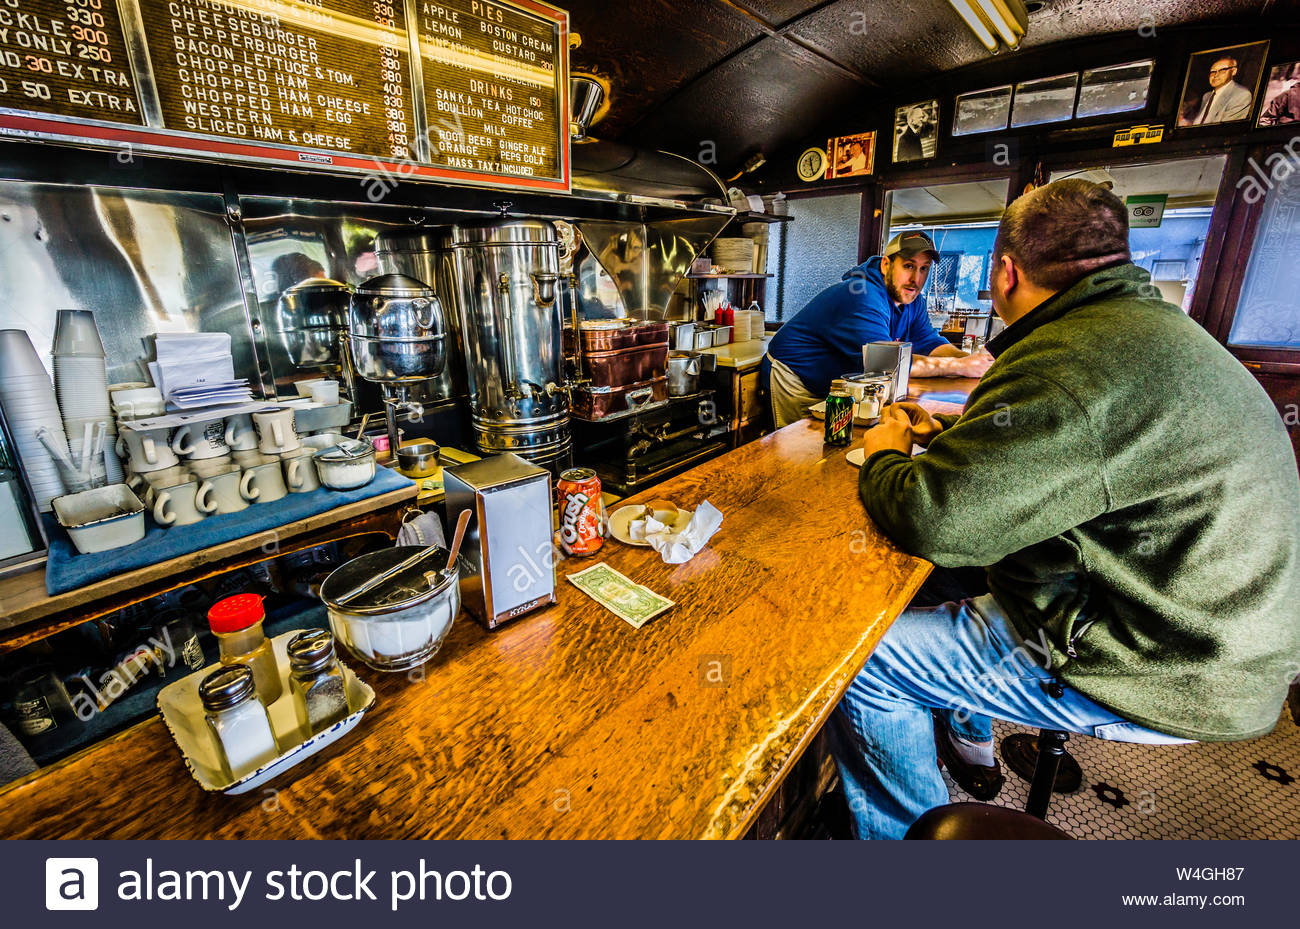 Diner Fare Stock Photos & Diner Fare Stock Images - Alamy